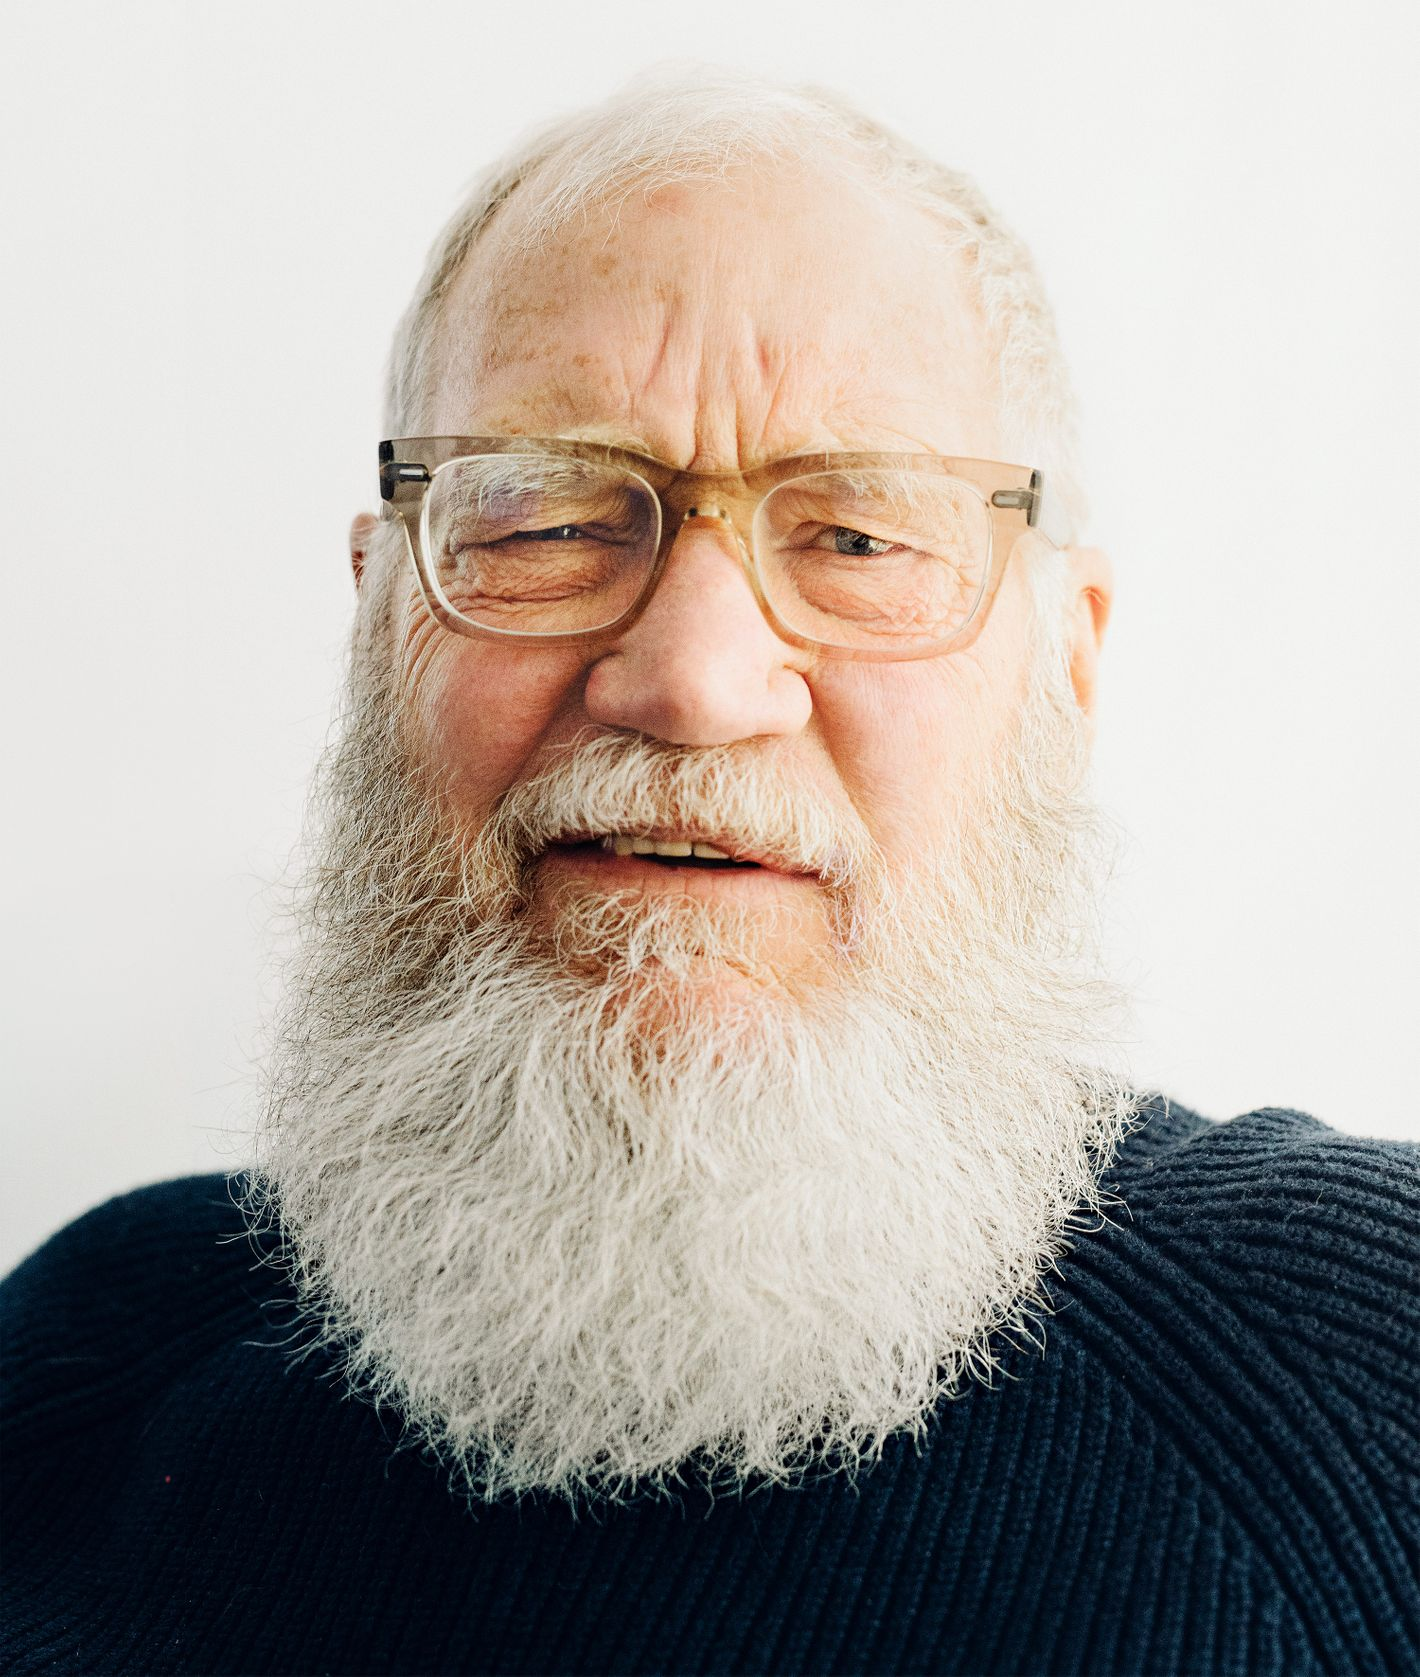 Retired David Letterman, not actually Sasquatch.